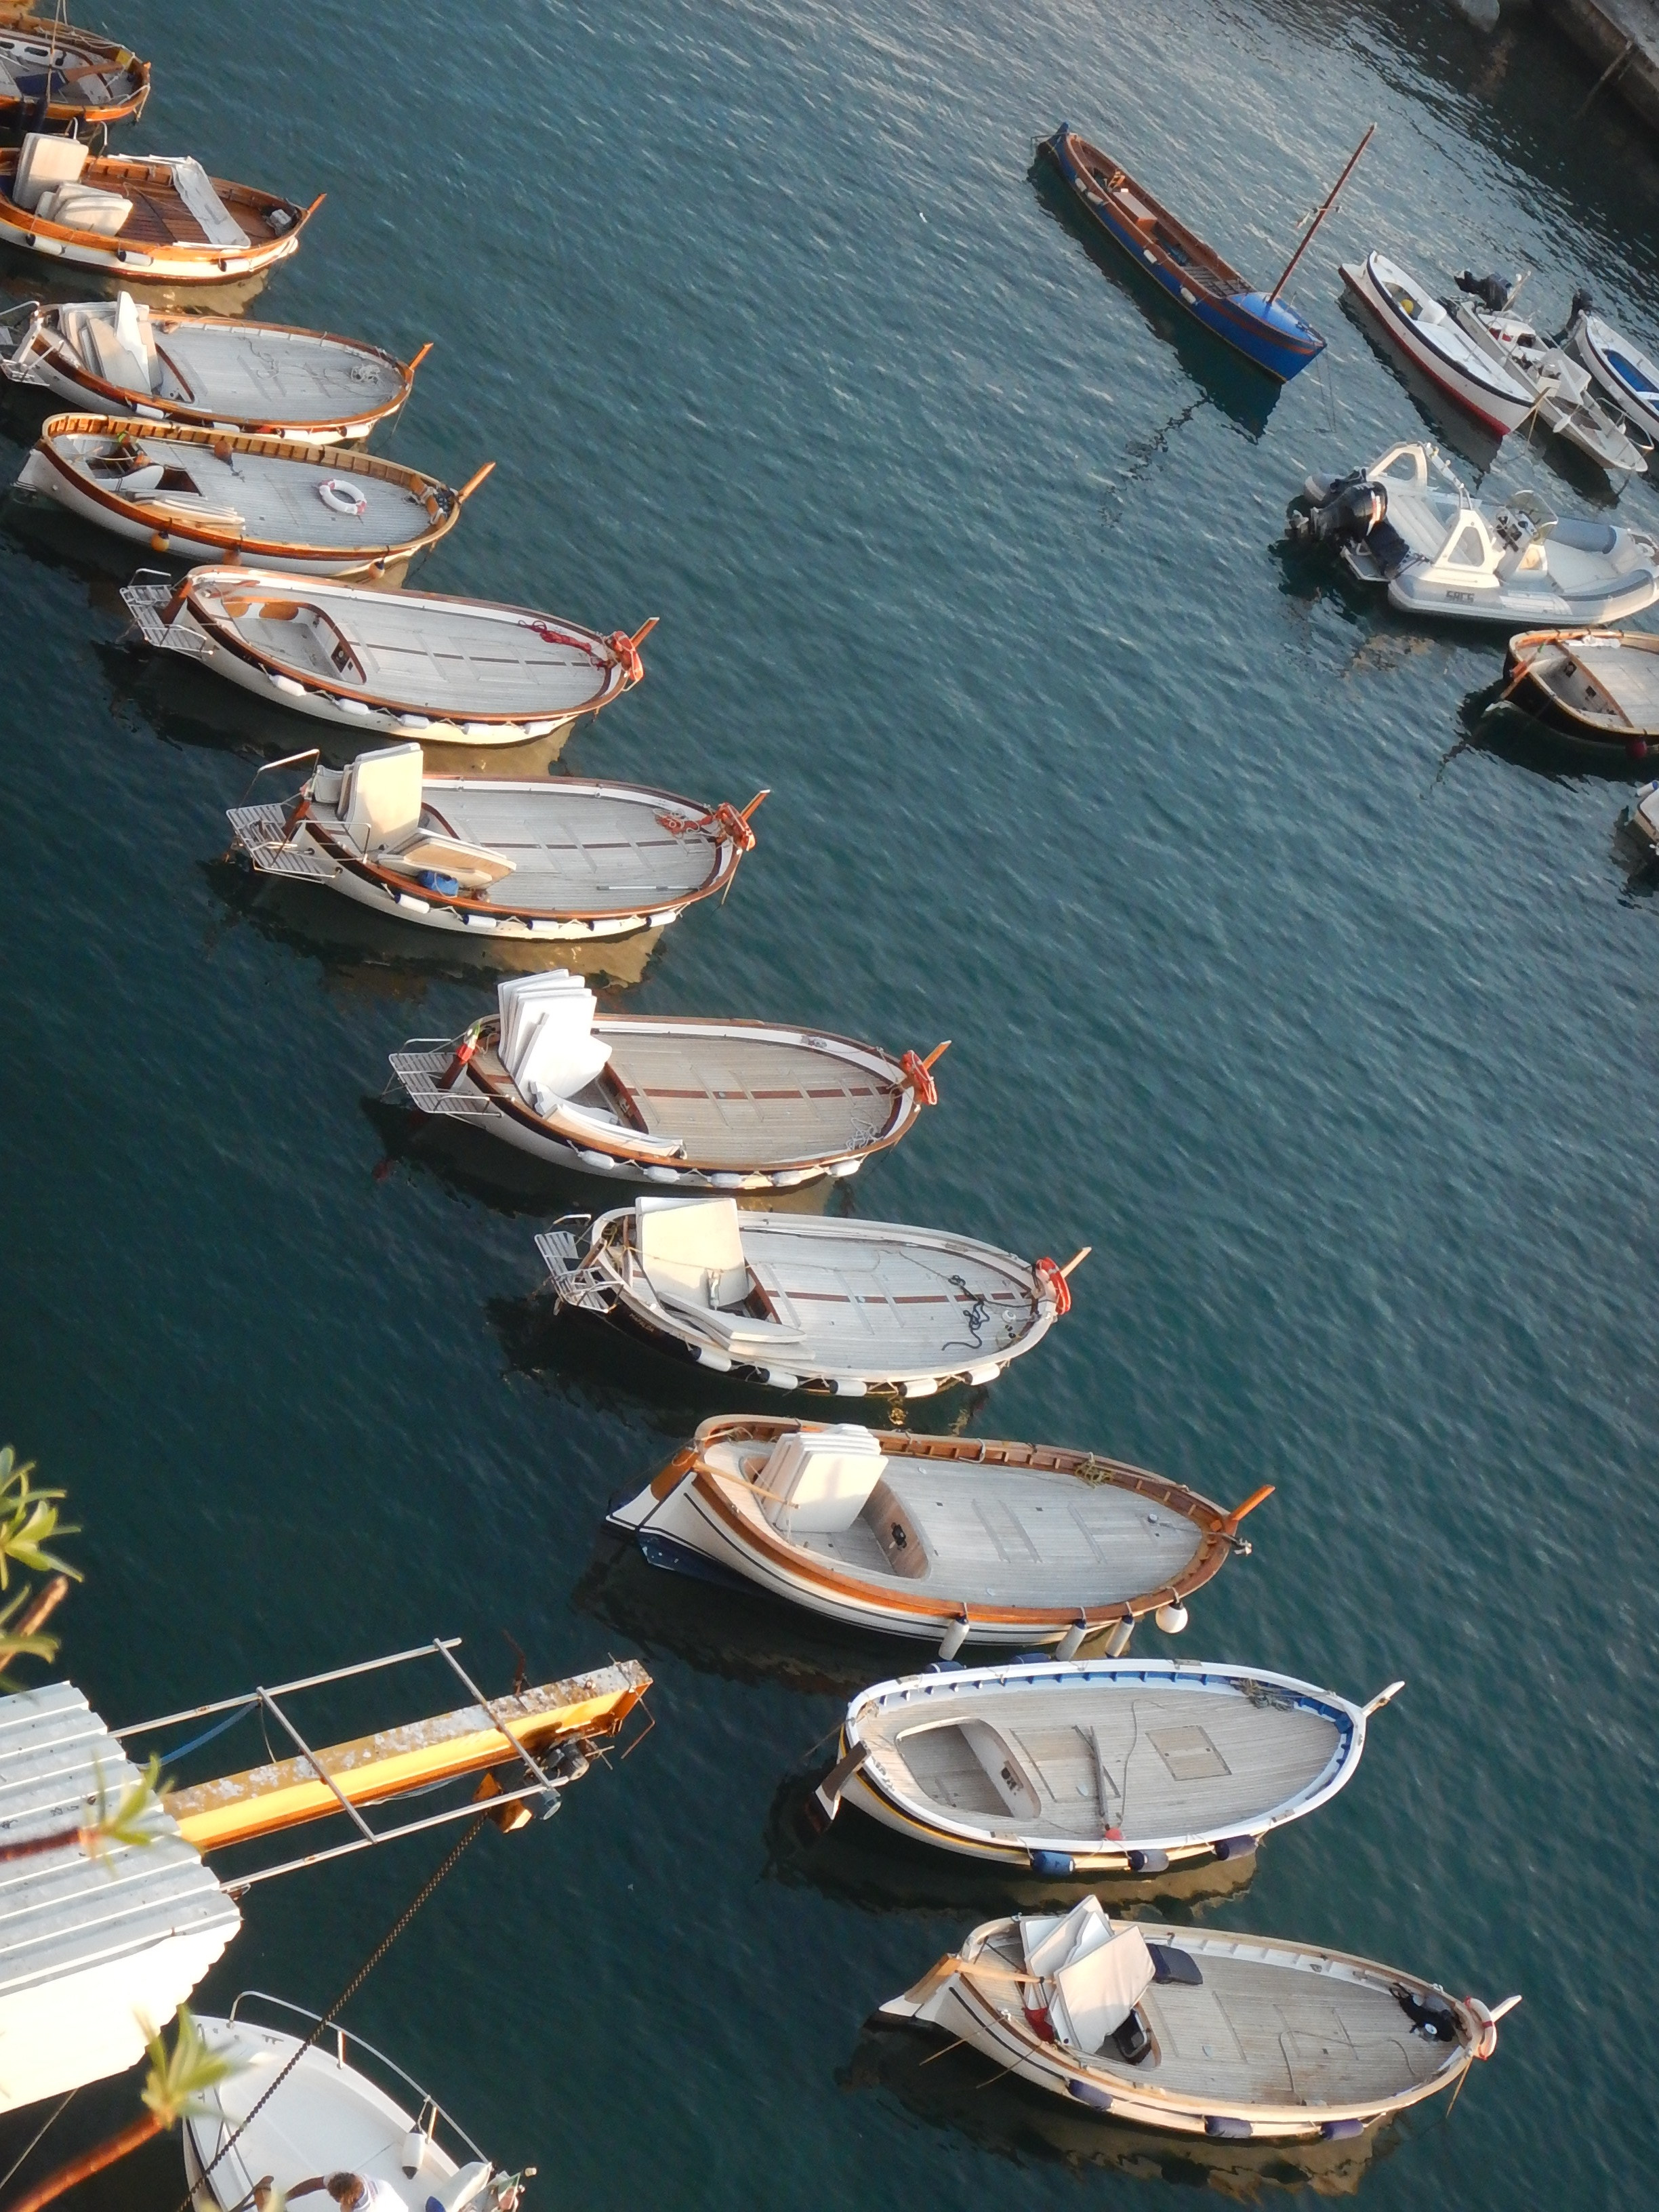 Little boats all lined up for the night.